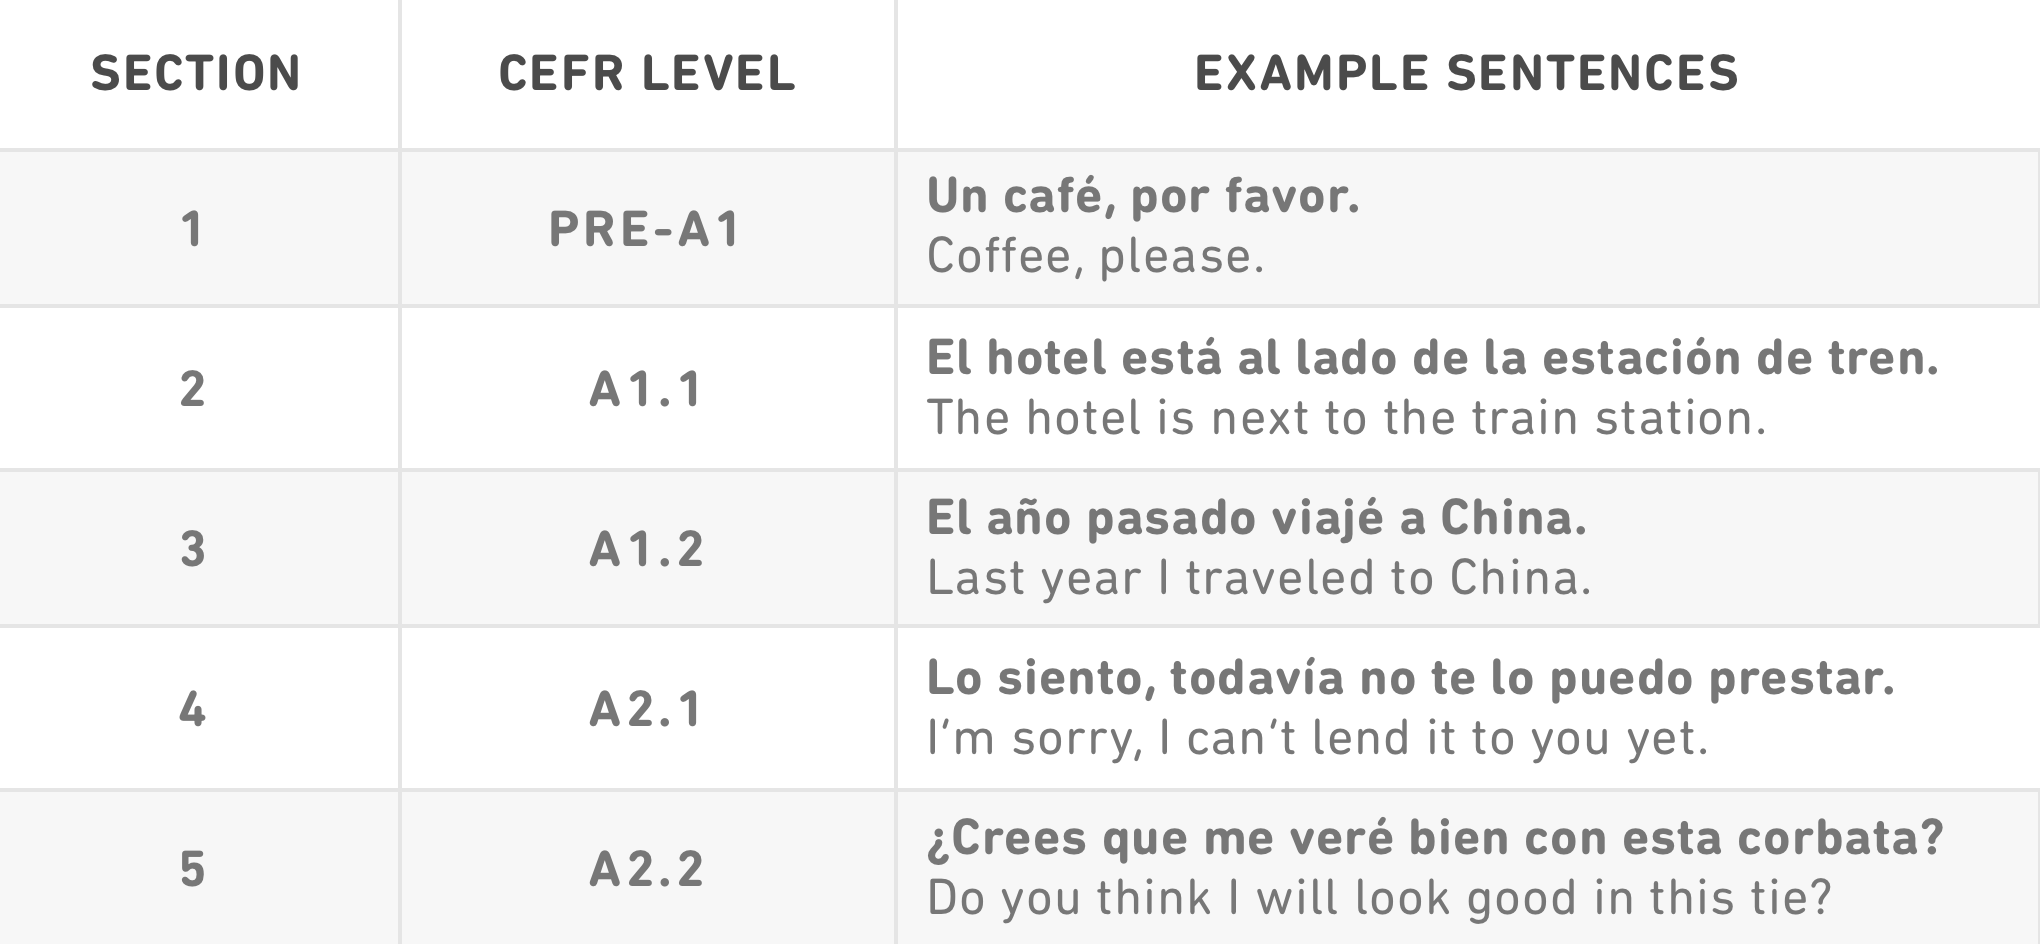 Duolingo CEFR-aligned sections with example sentences